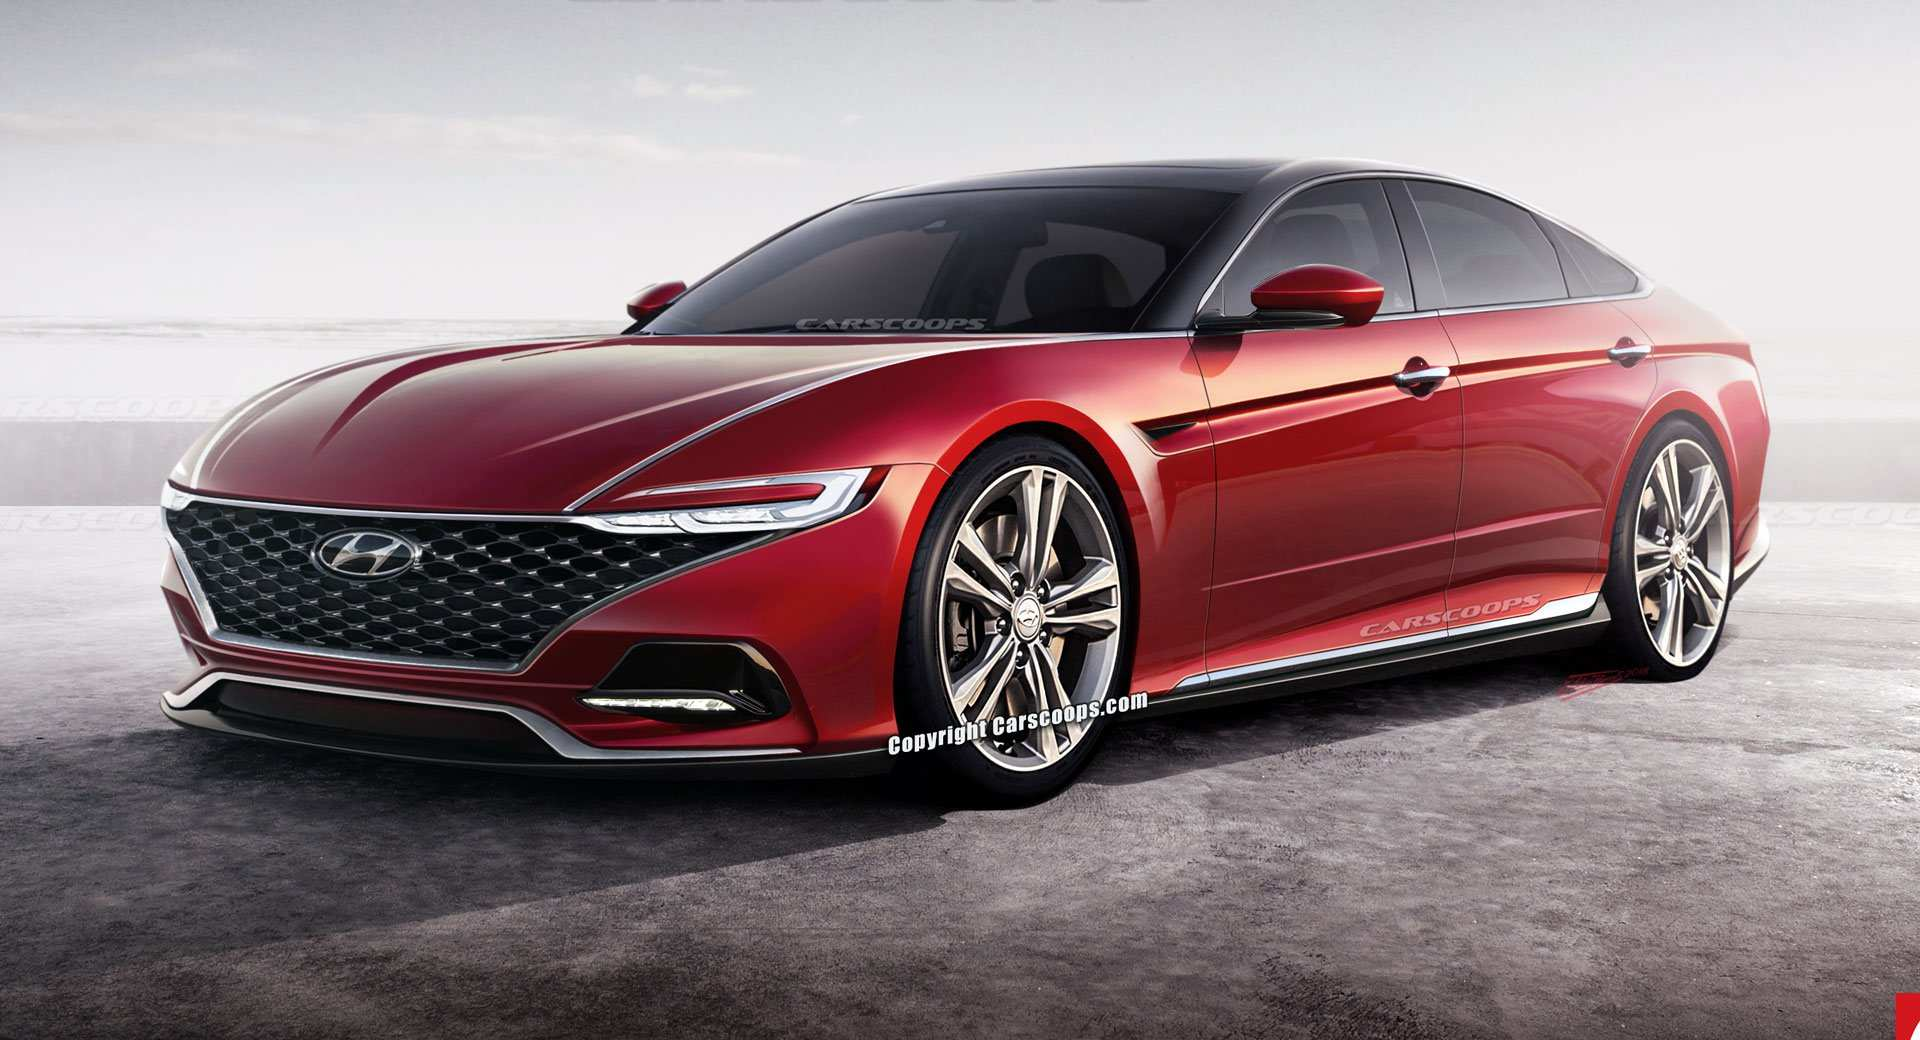 67 New Price Of 2020 Hyundai Sonata Model for Price Of 2020 Hyundai Sonata